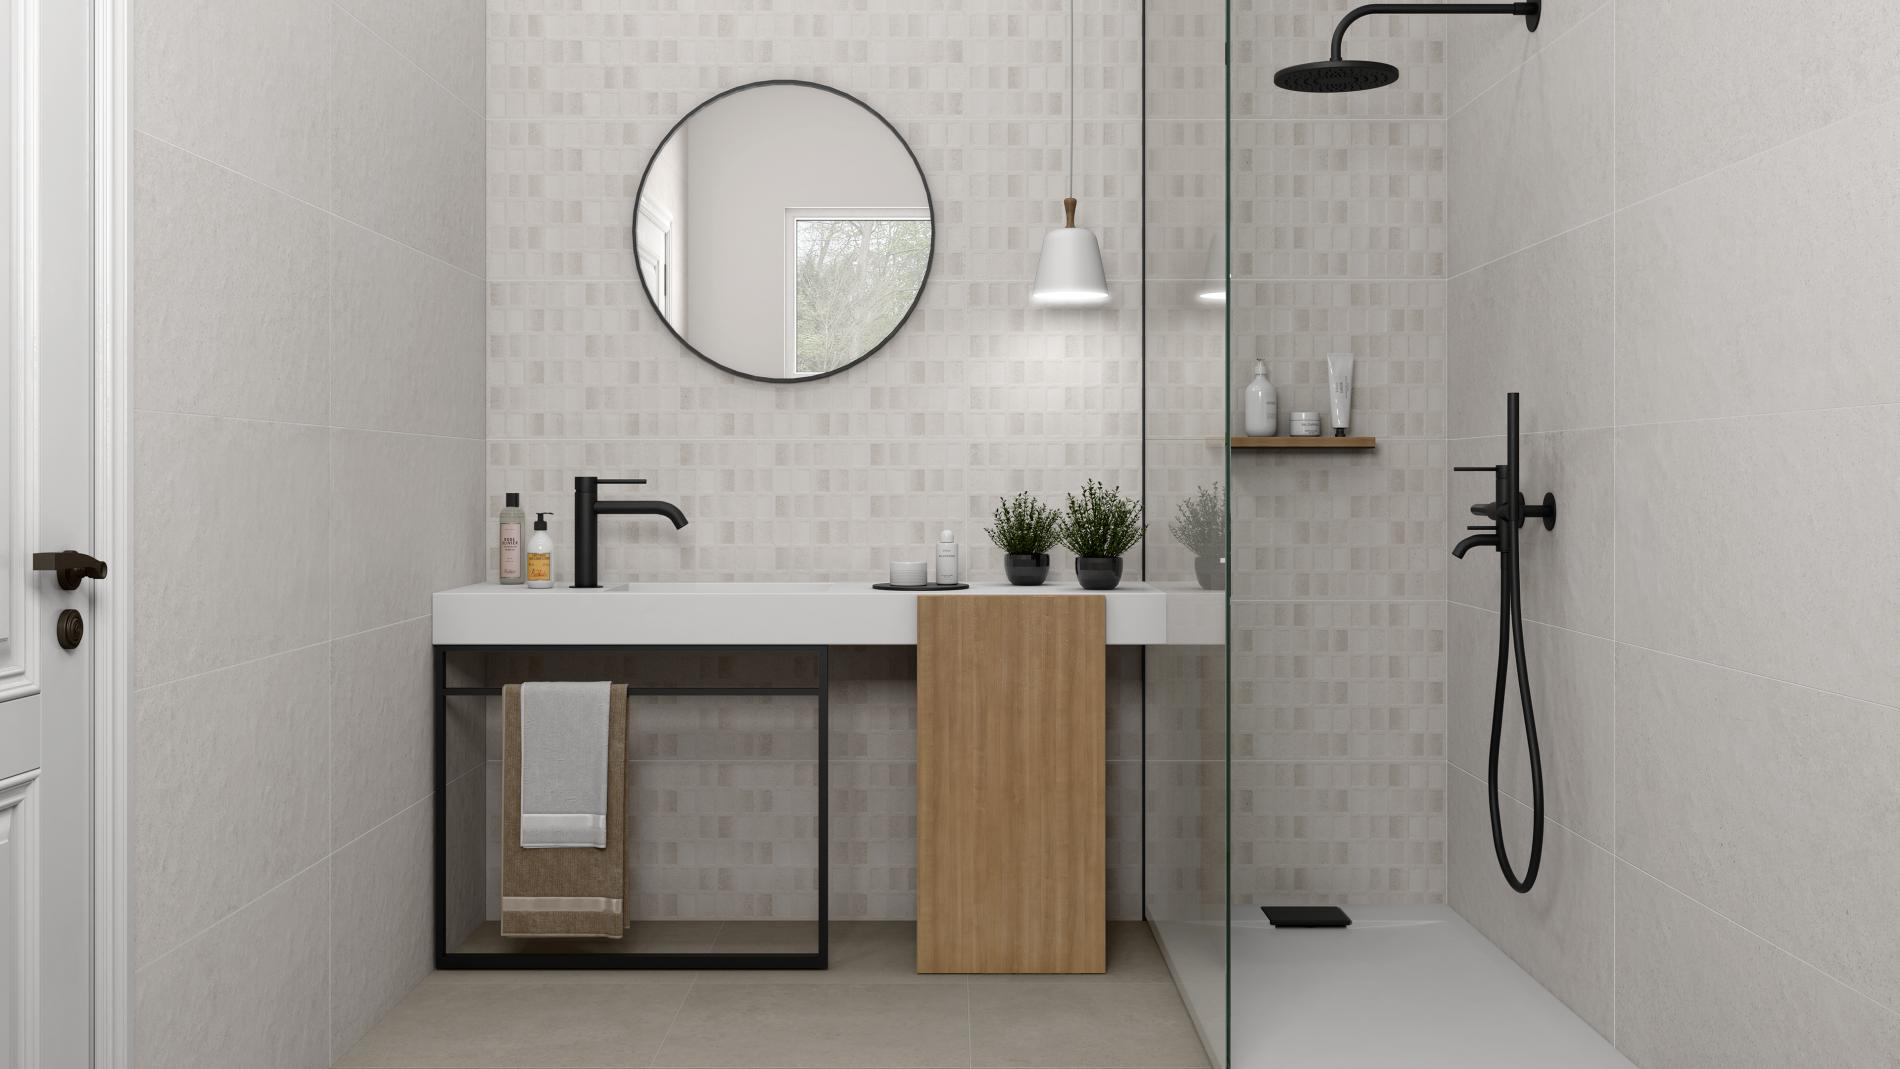 pam1900x740 Tiles dublin waterloo bathrooms commercial contracts ireland supply and fit luxury.jpg